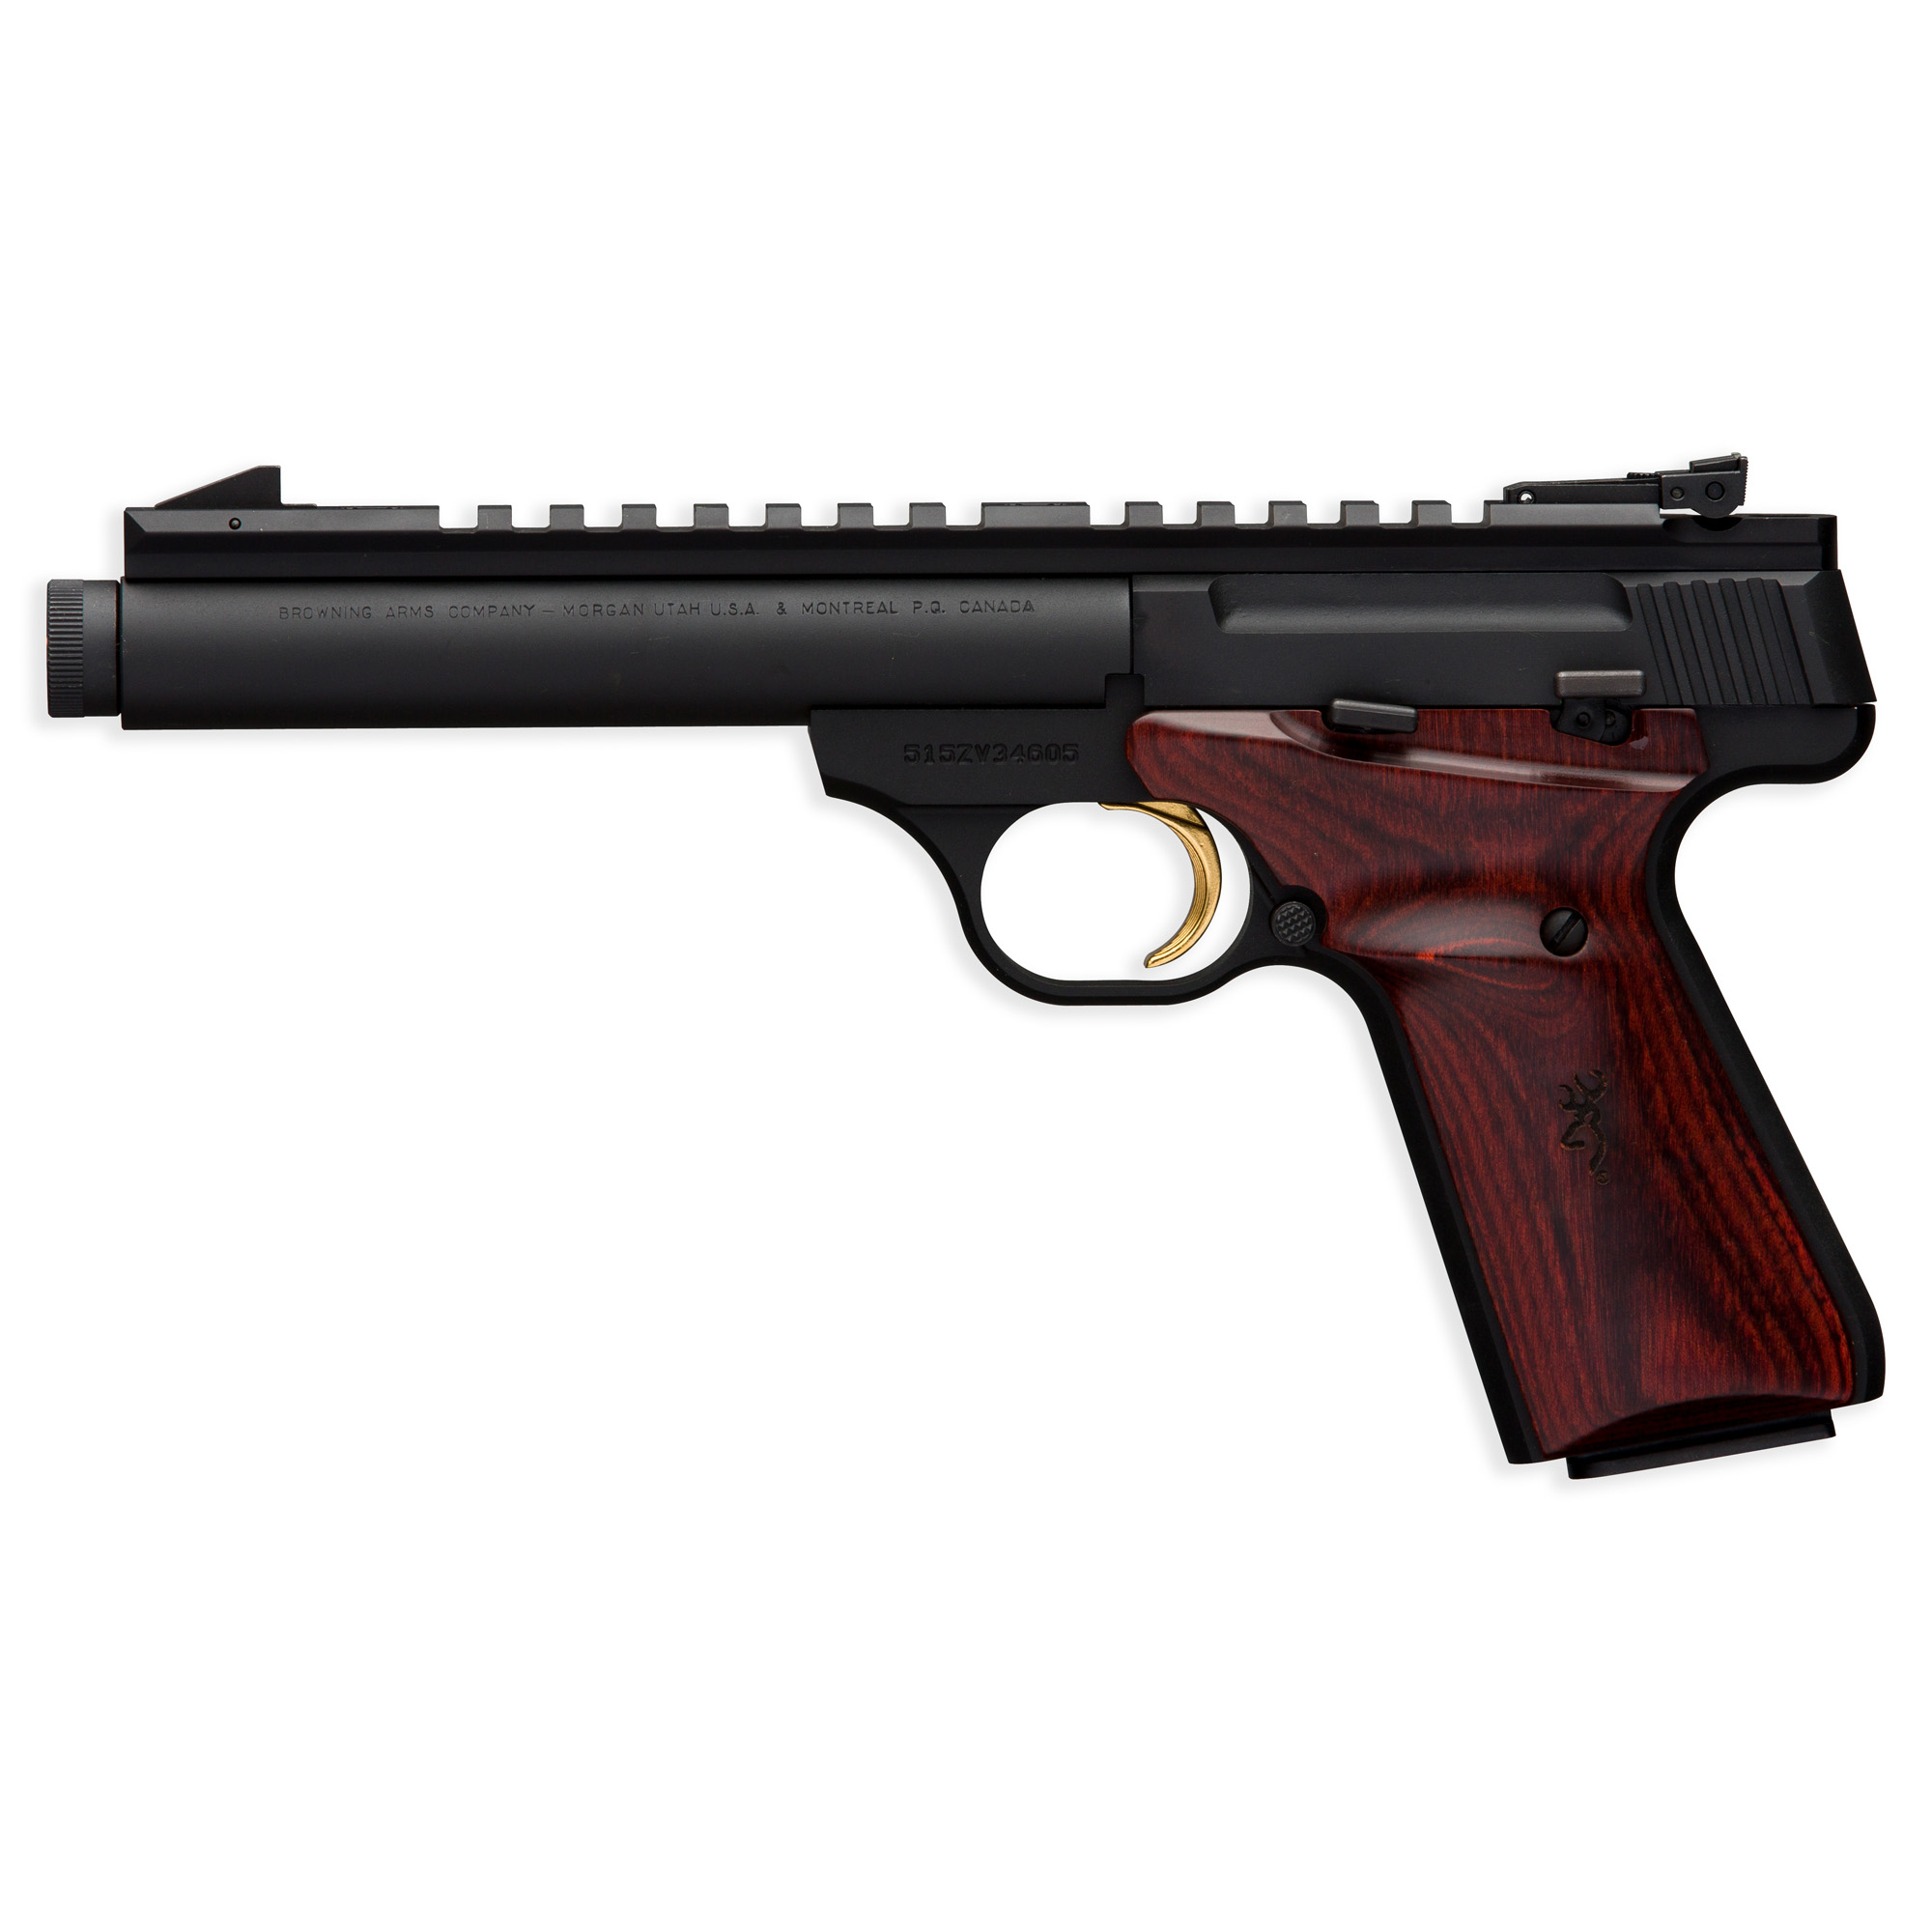 "Brown Bm Fld Trgt 22lr 5.5"" Threaded"